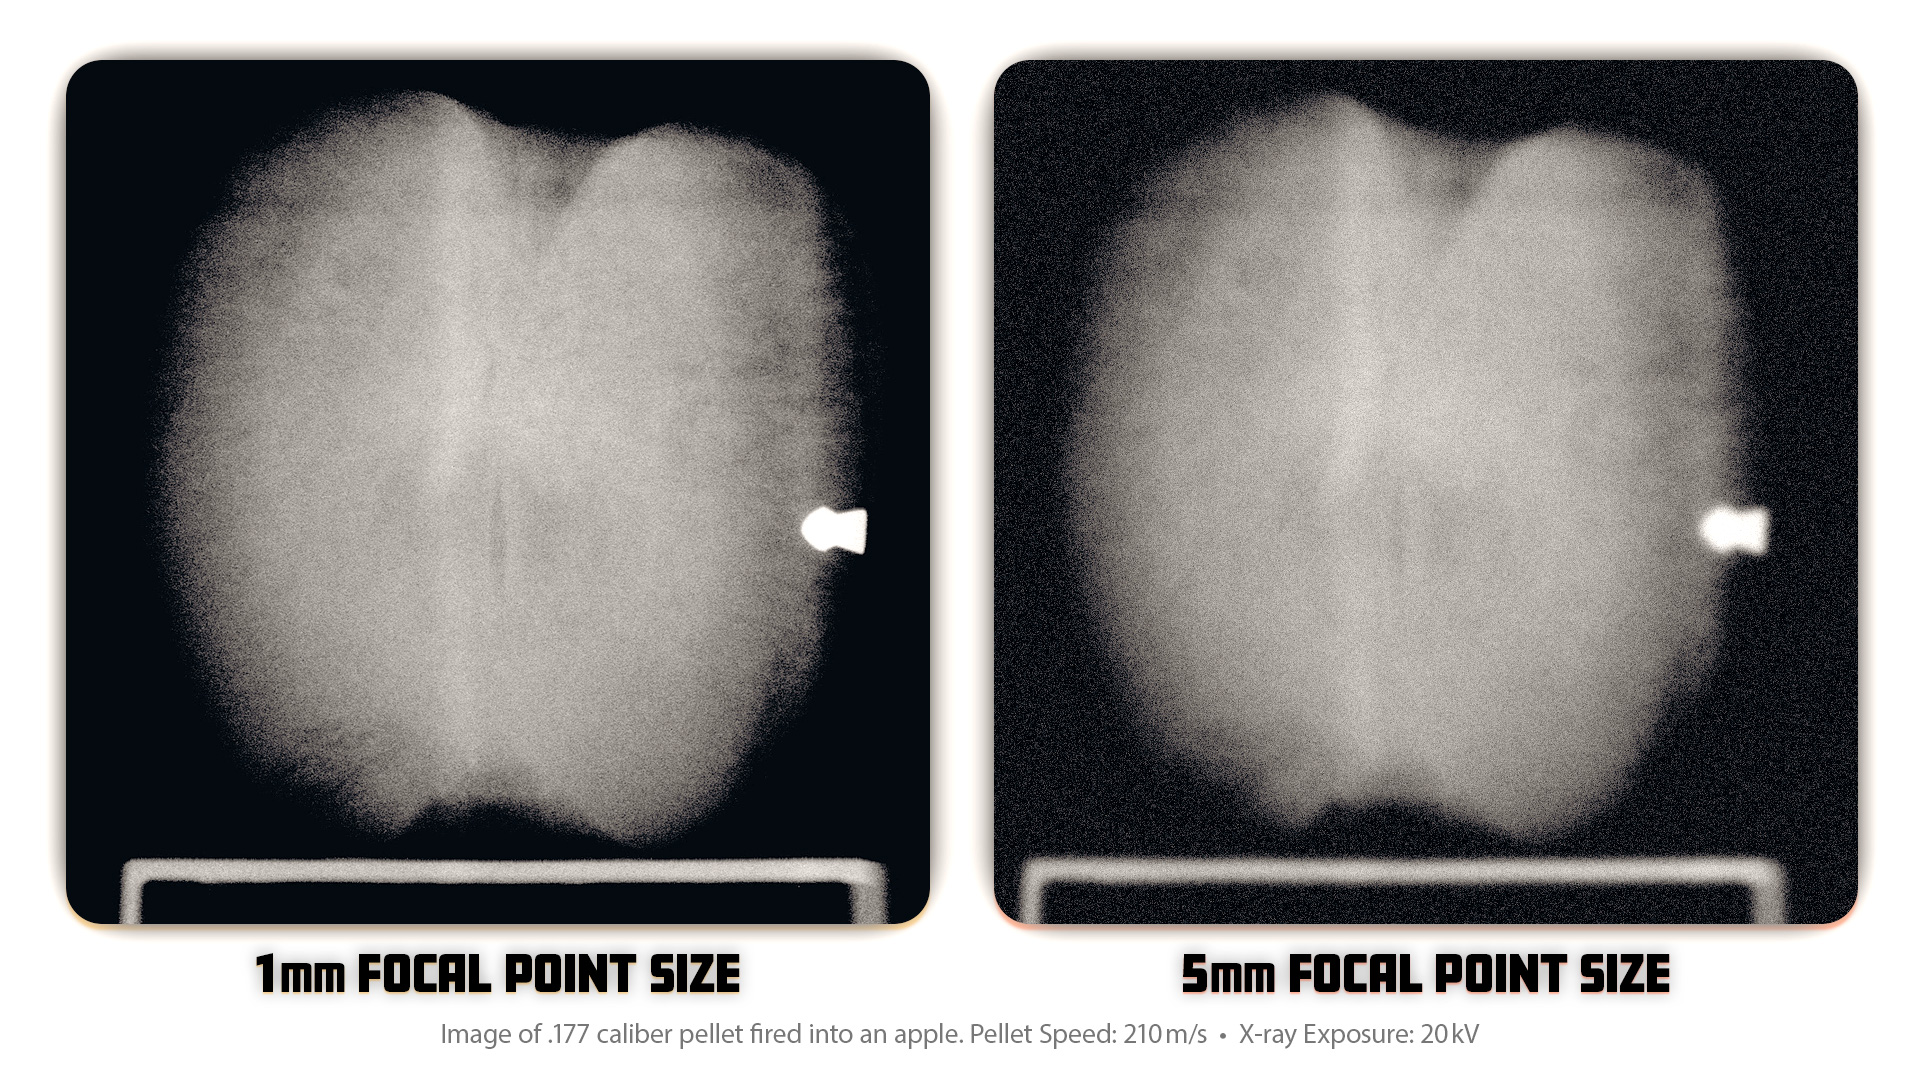 Focal spot size and radiography.